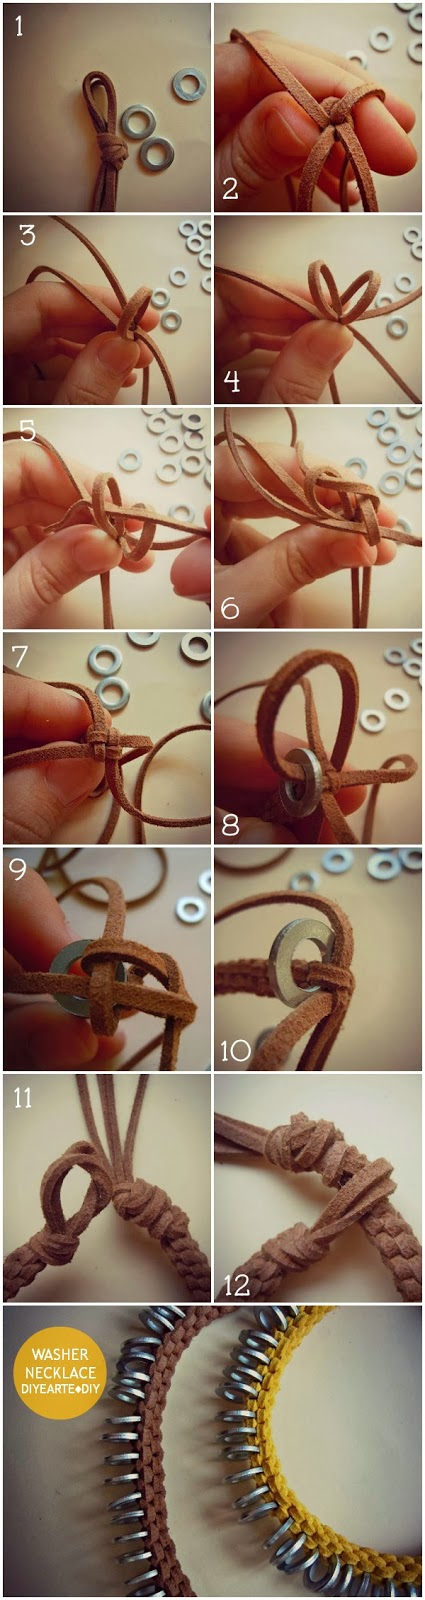 washer-necklace-diy-collar-arandelas-diyearte-handmade-jewelry-homemade